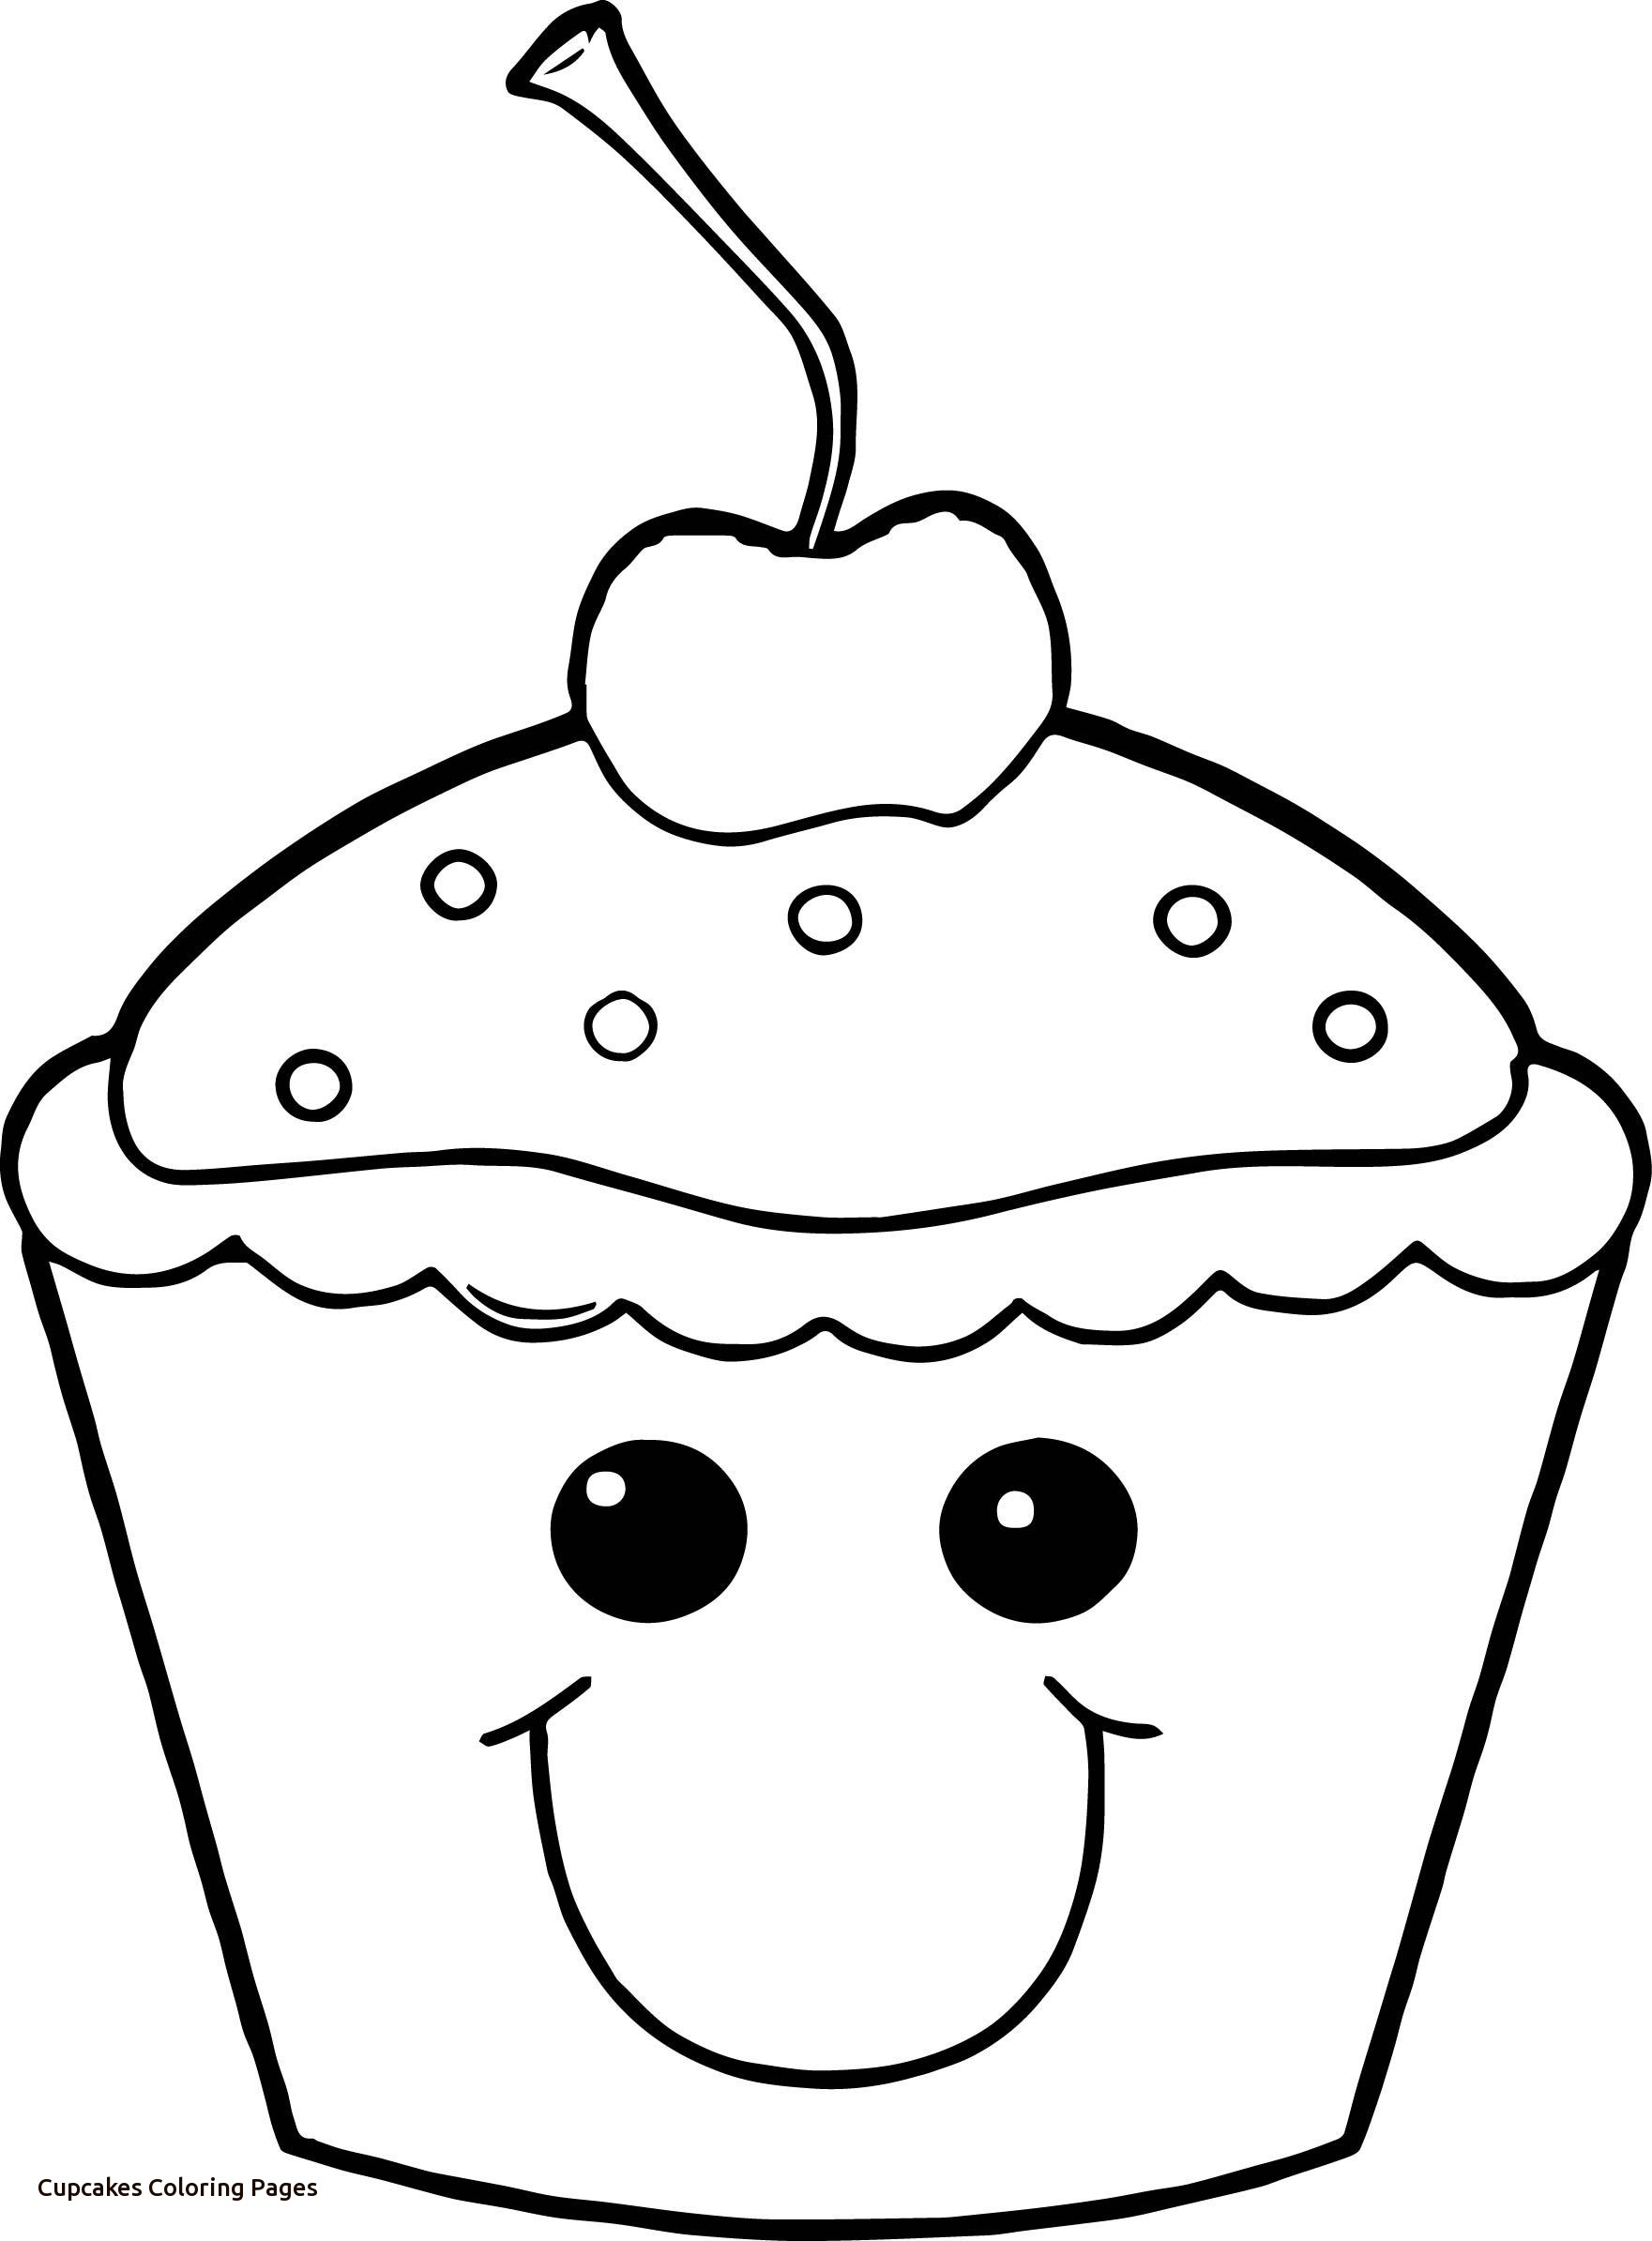 1761x2389 Cute Cupcake Coloring Pages Coloring Home Of Cupcakes Coloring